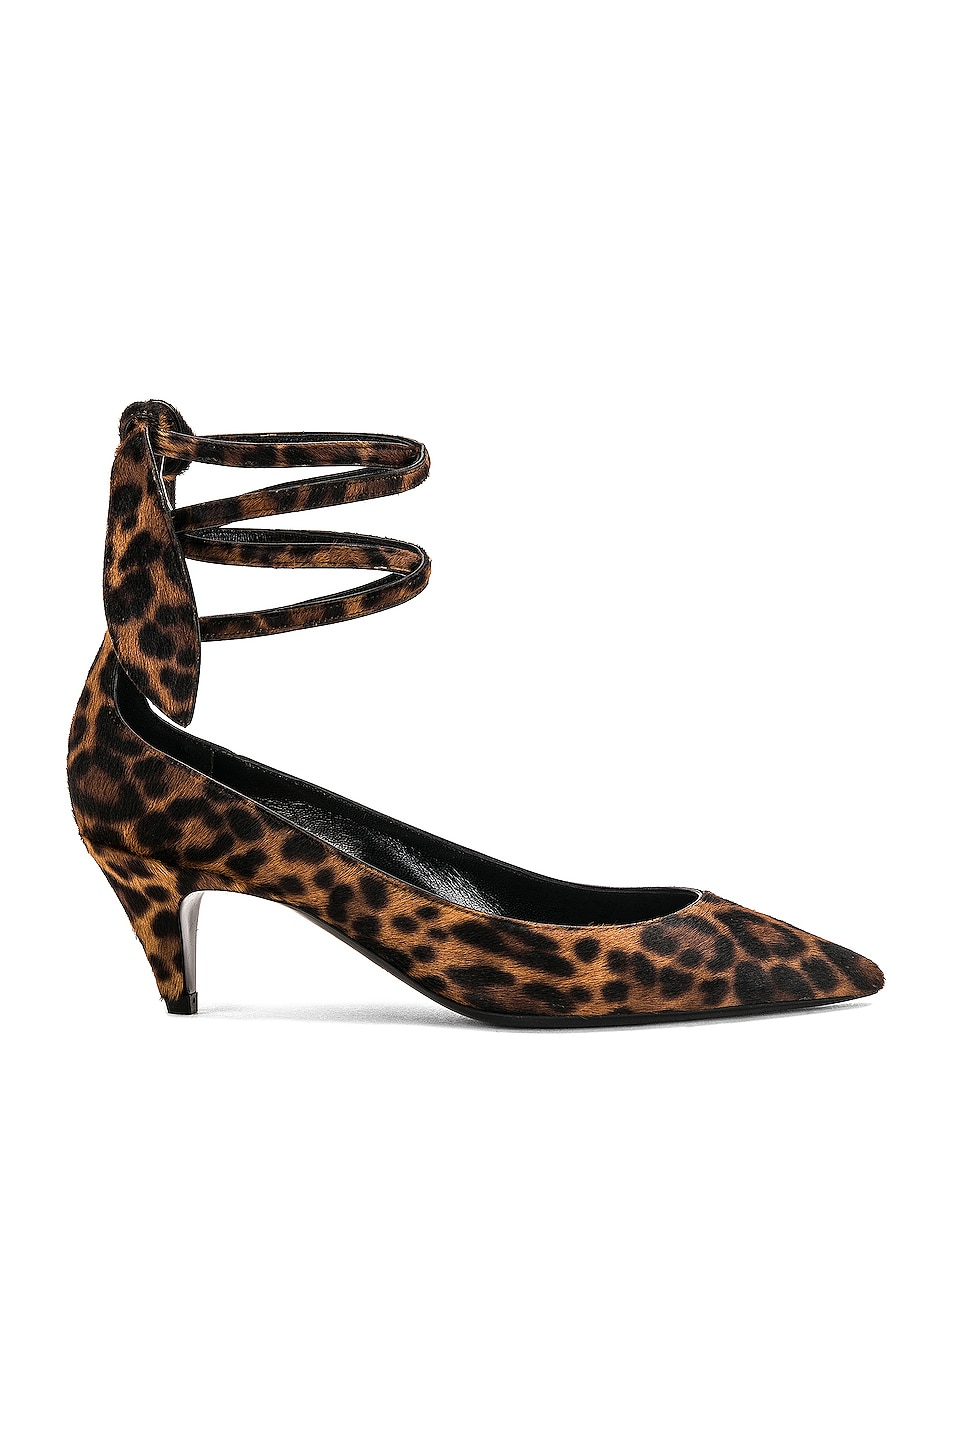 Image 1 of Saint Laurent Charlotte Leopard Kitten Heel in Leopard